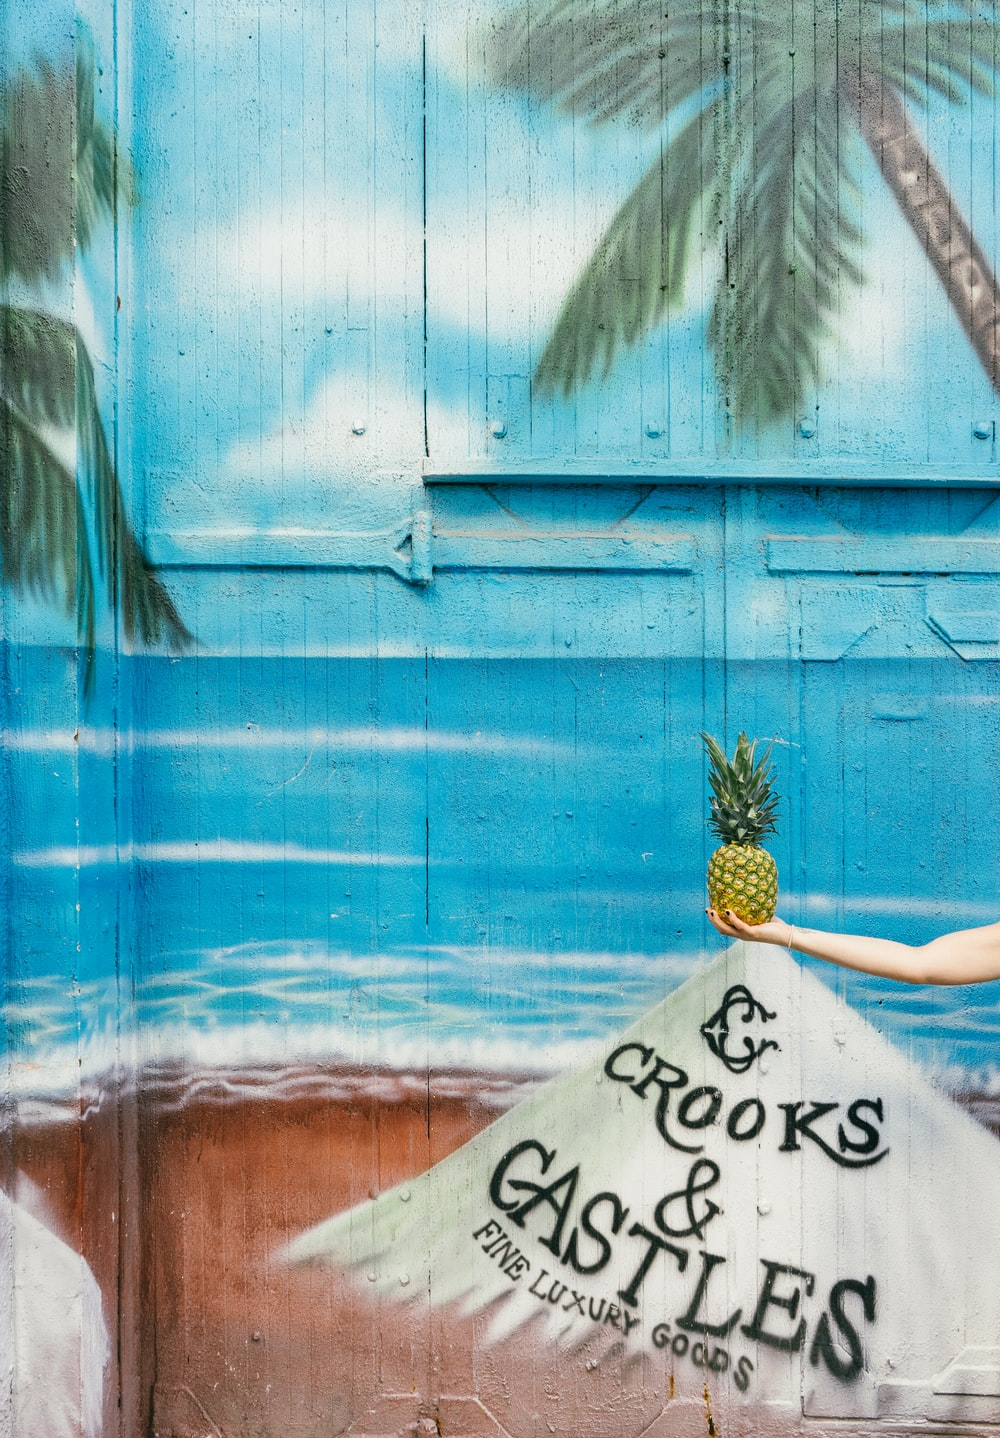 Mural painting of a pineapple on the beach.